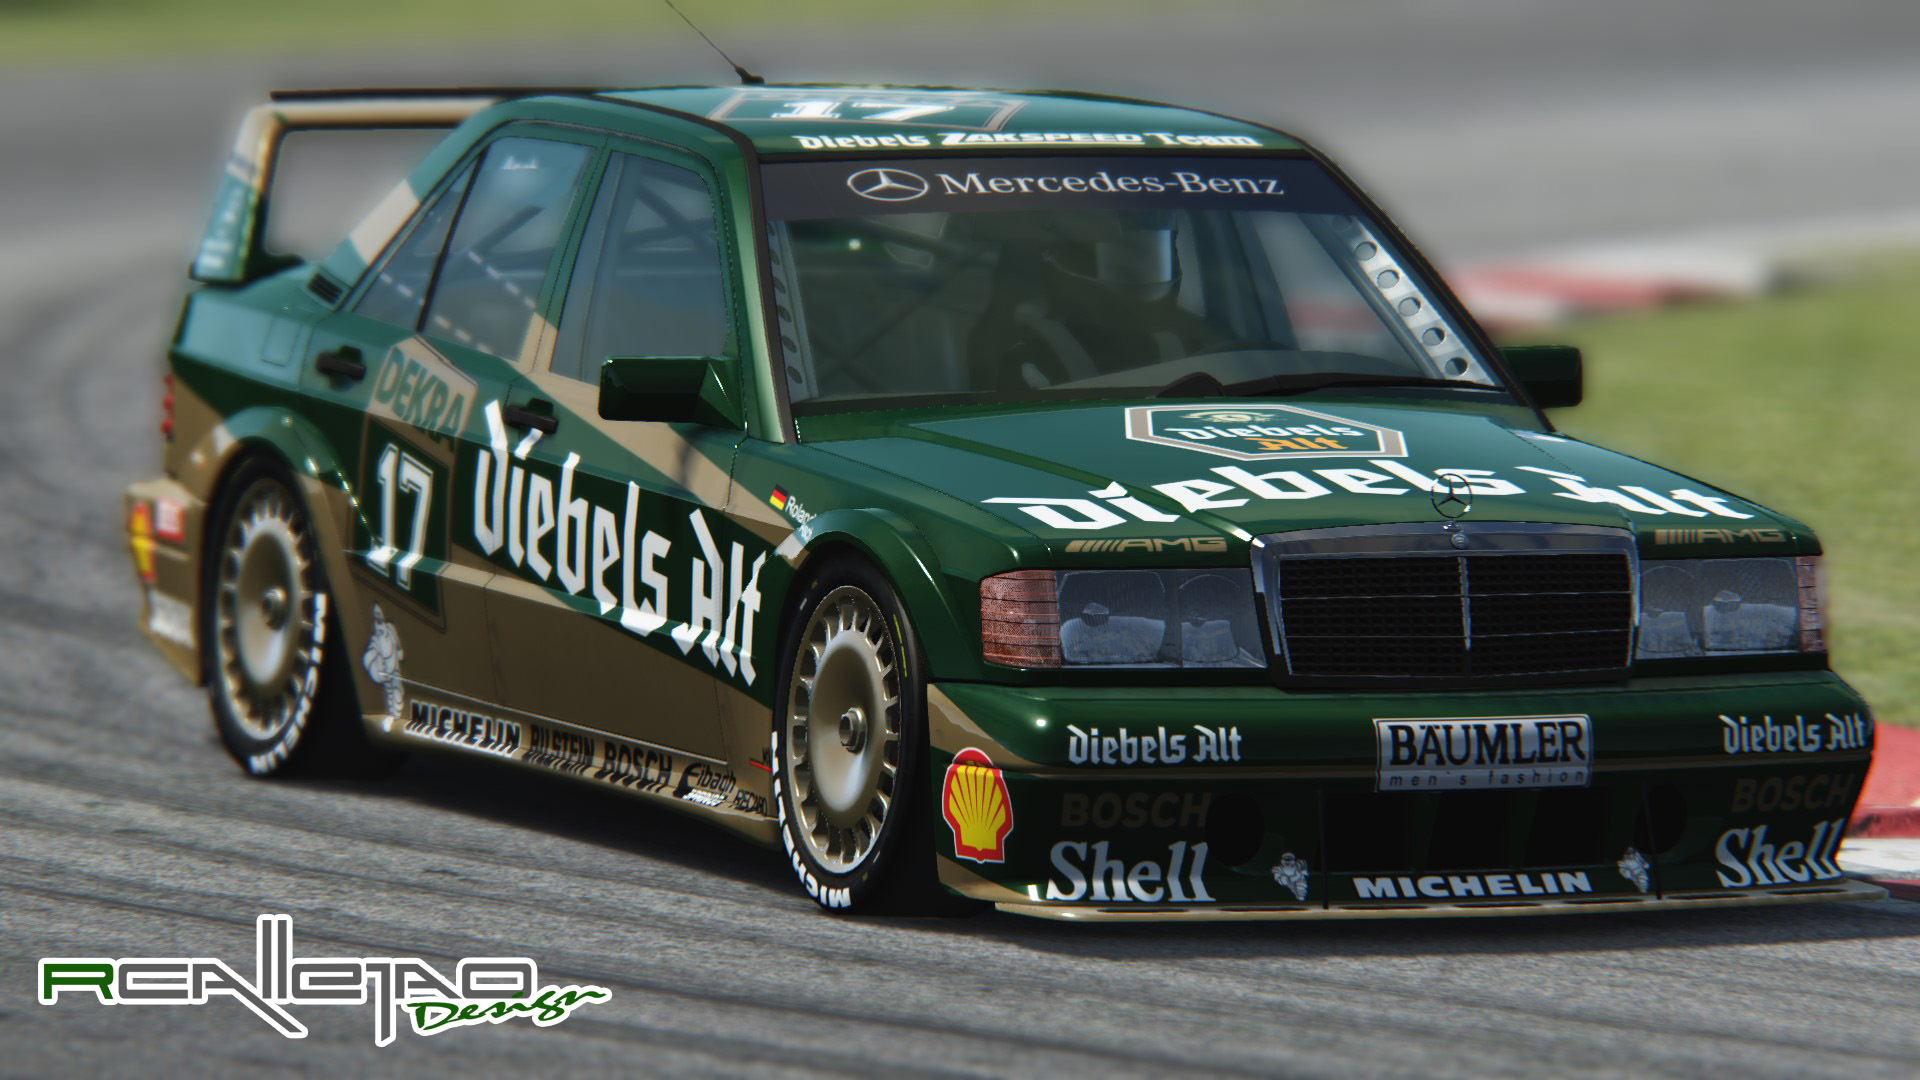 Screenshot_ks_mercedes_190_evo2_magione_16-3-115-17-44-15.jpg